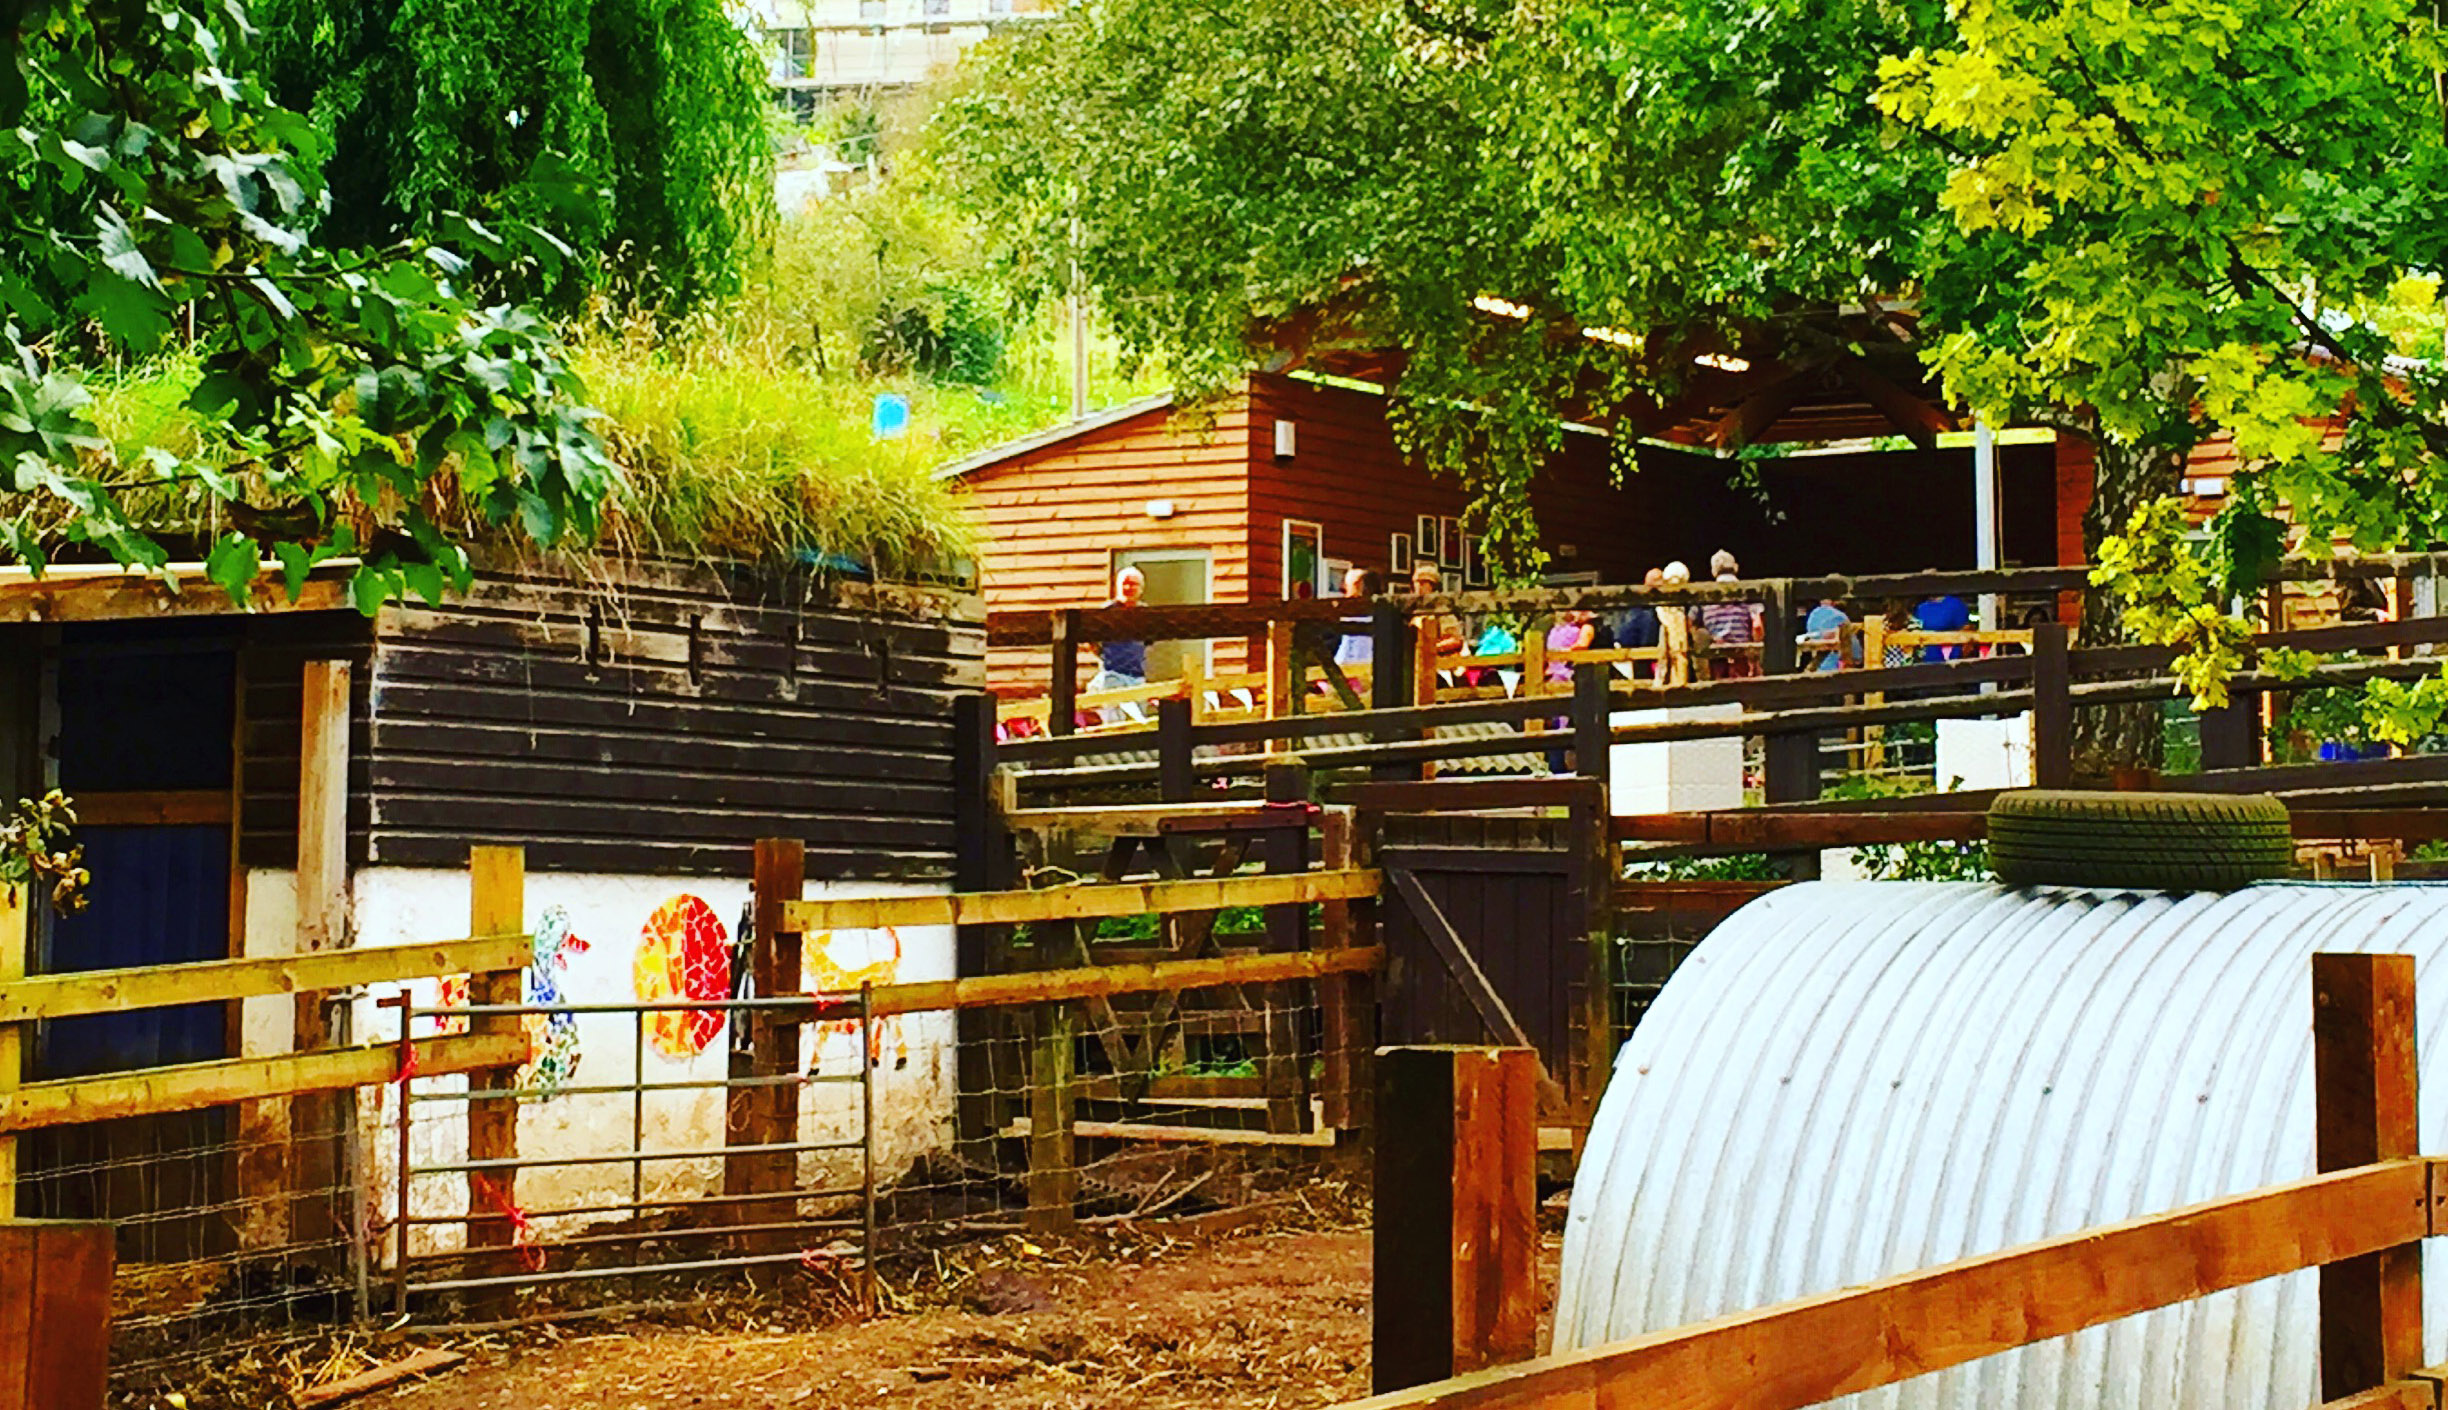 St. Werburgh's City Farm